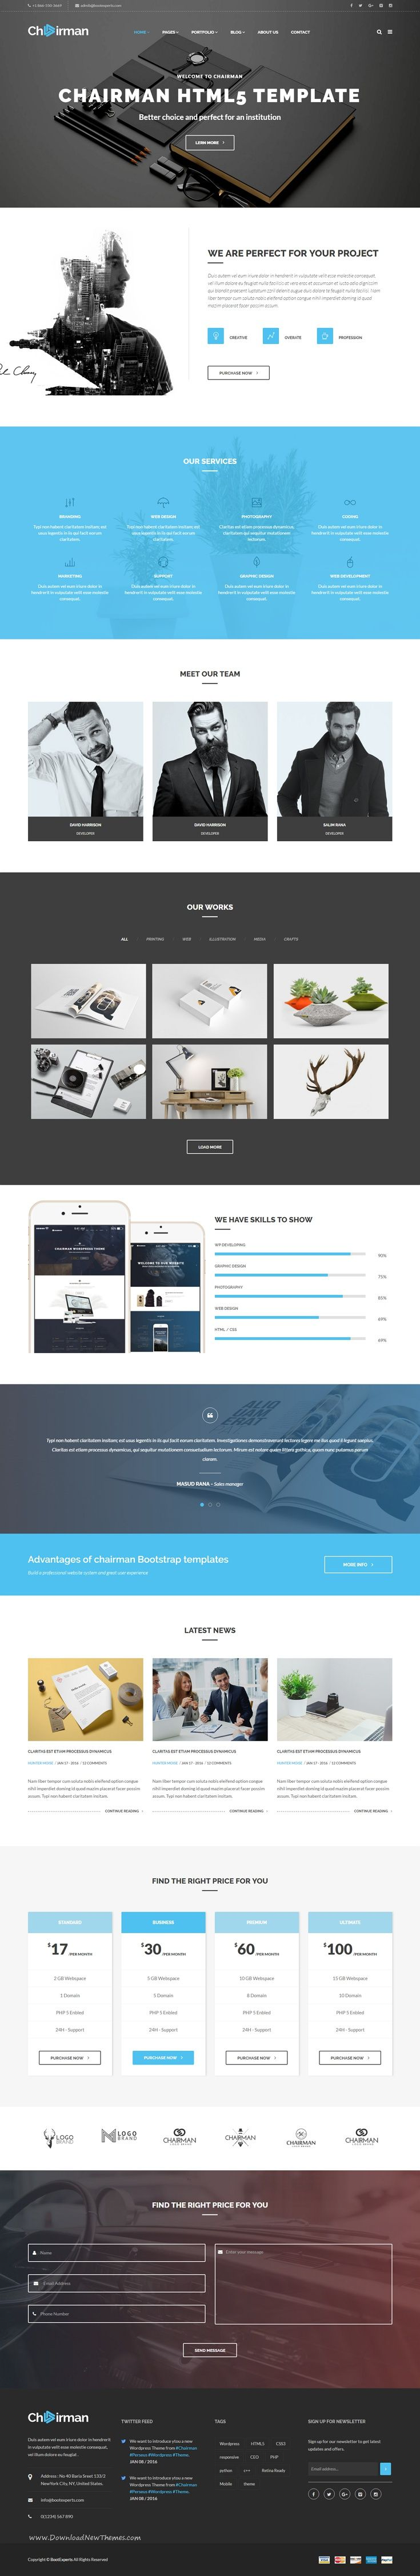 Chairman Multipurpose Bootstrap HTML5 Template is a responsive, clean and modern designed corporate website template.